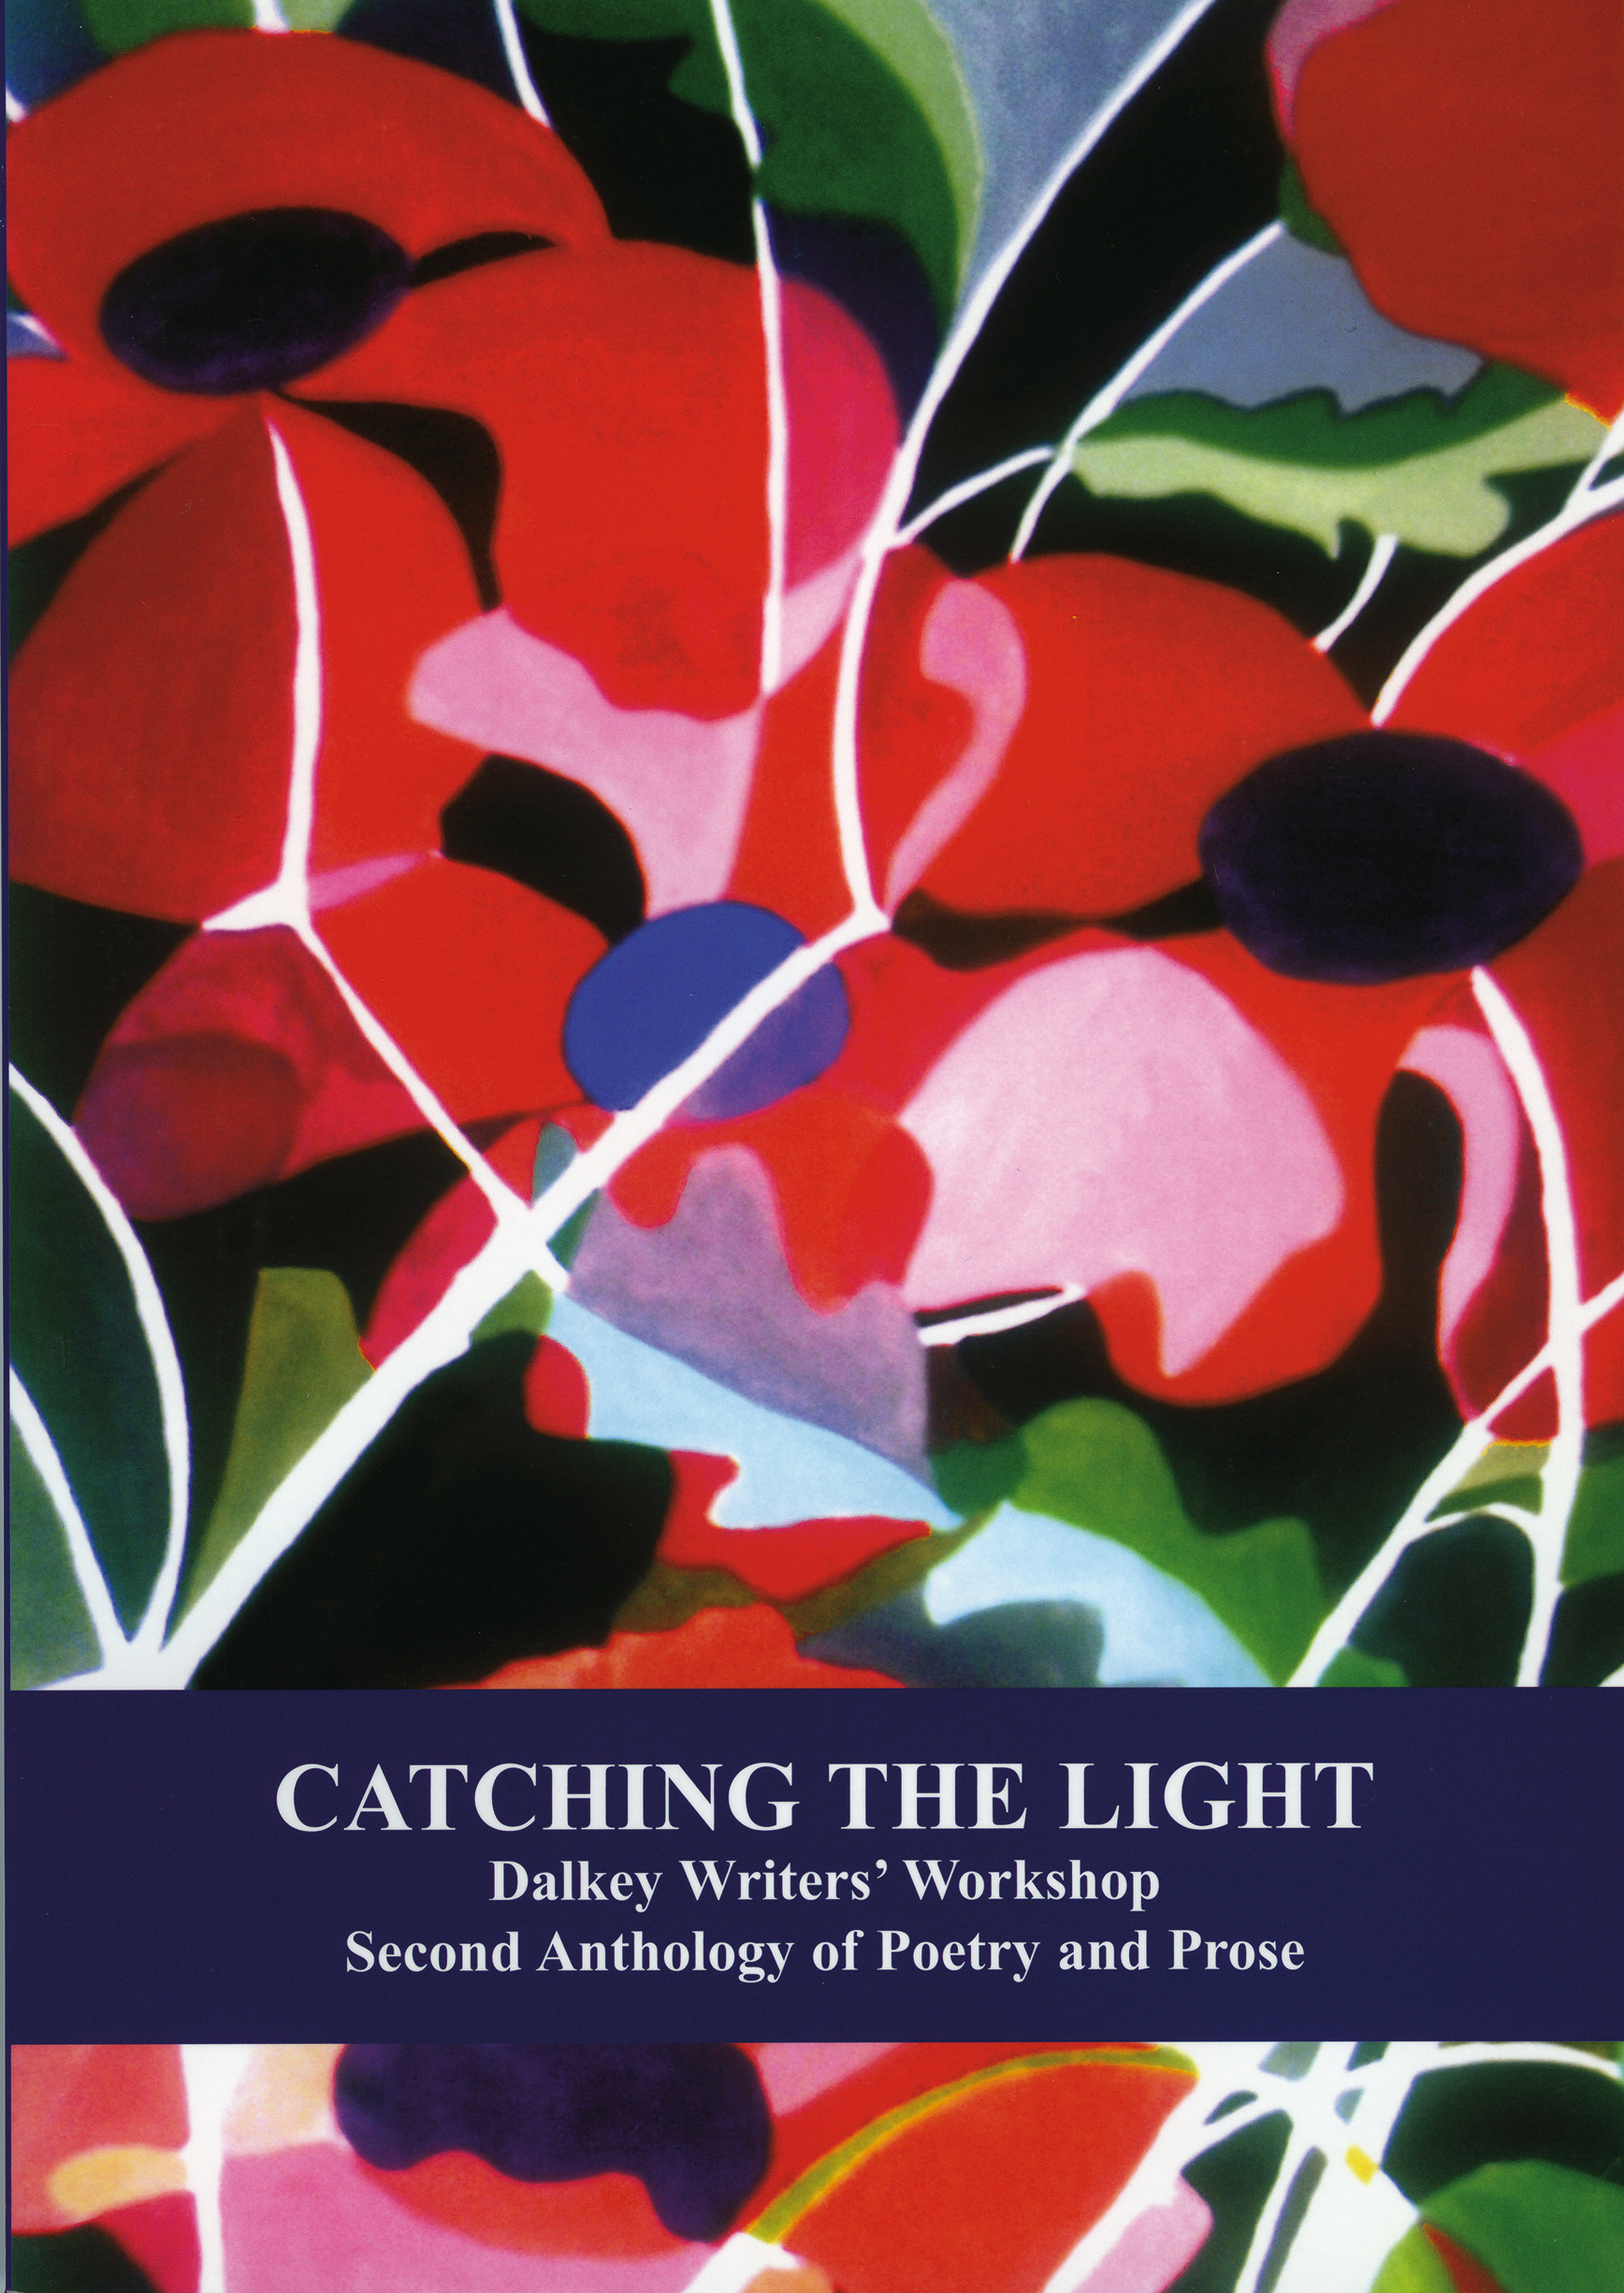 CatchingTheLight_2007.jpg